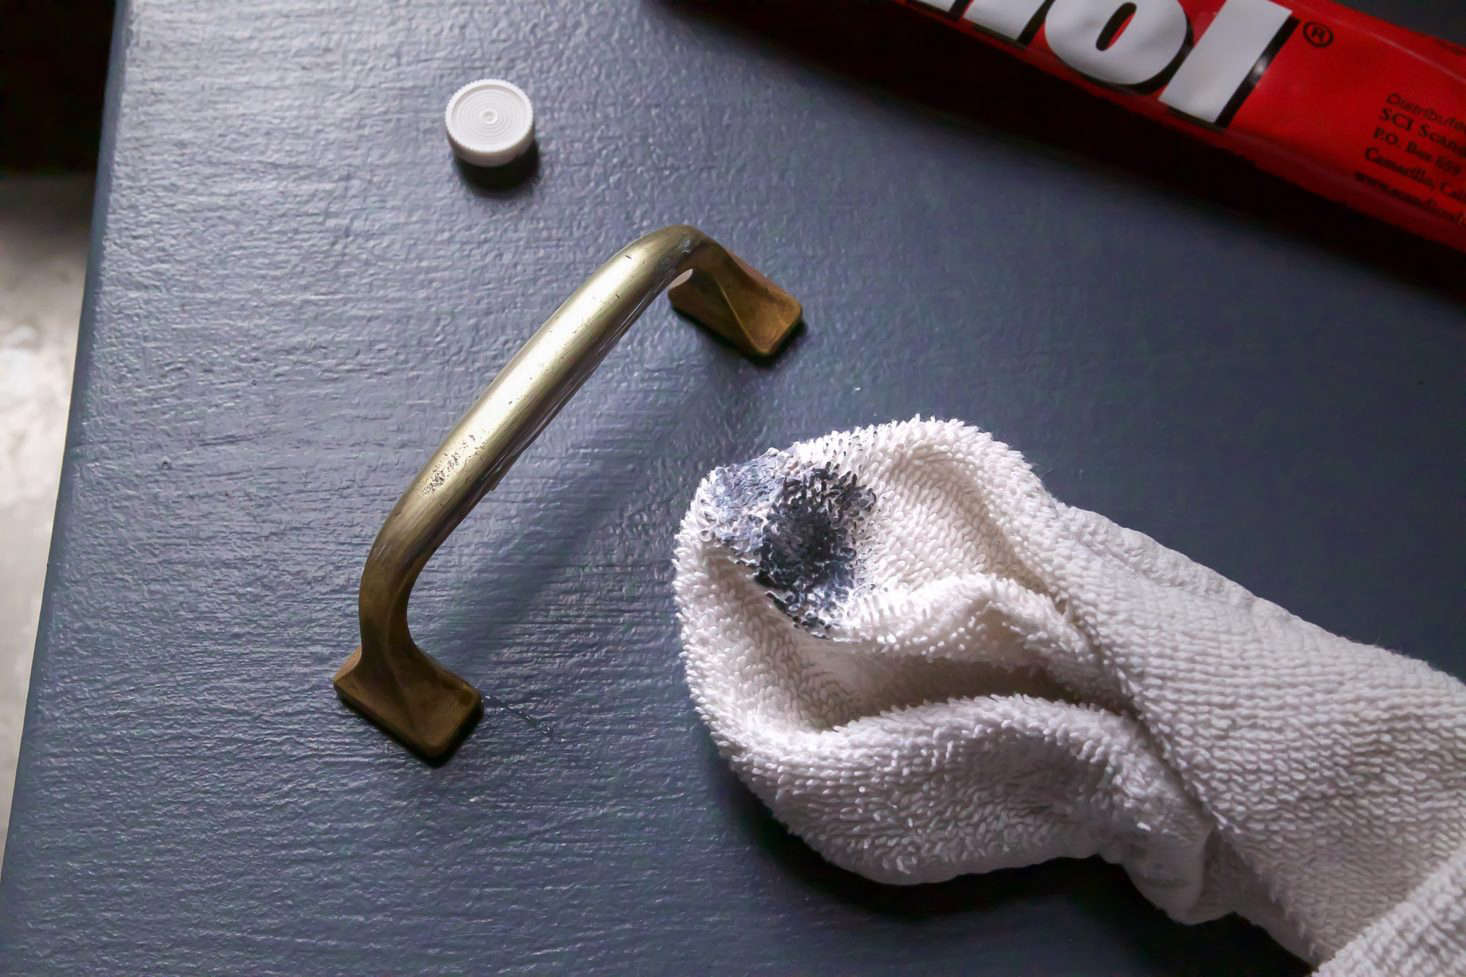 A good commercial cleaner is by far the fastest way to clean badly tarnished brass.